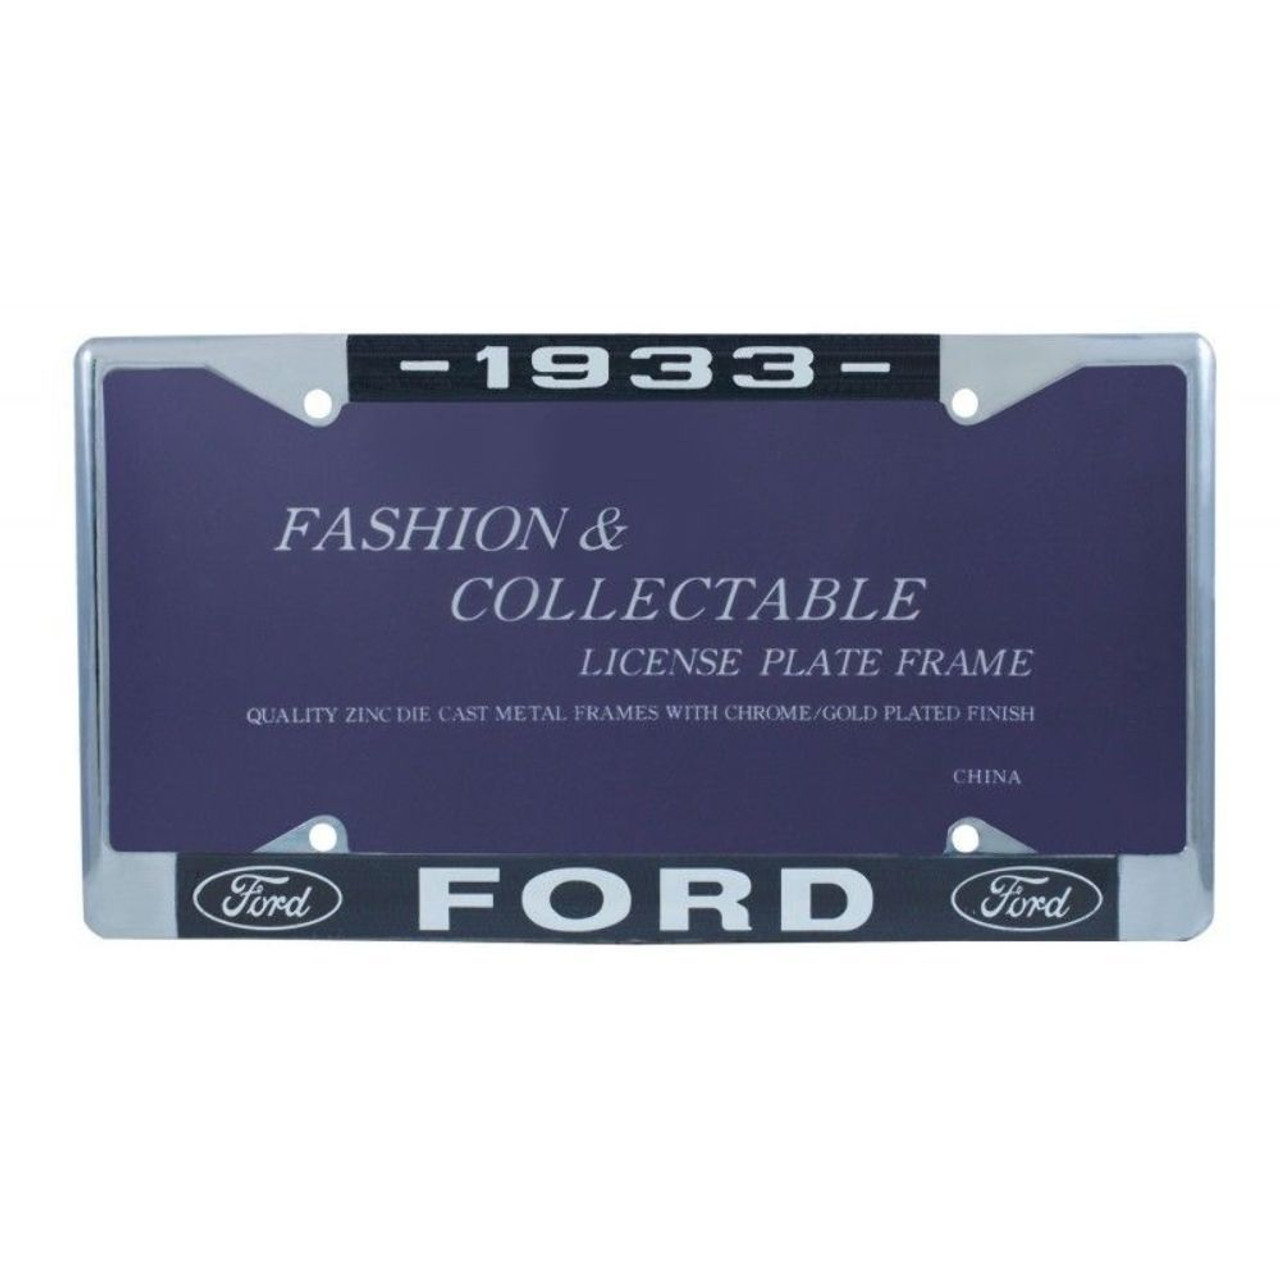 1933 Ford License Plate Frame Chrome Finish with Blue and White Script, Set of 2